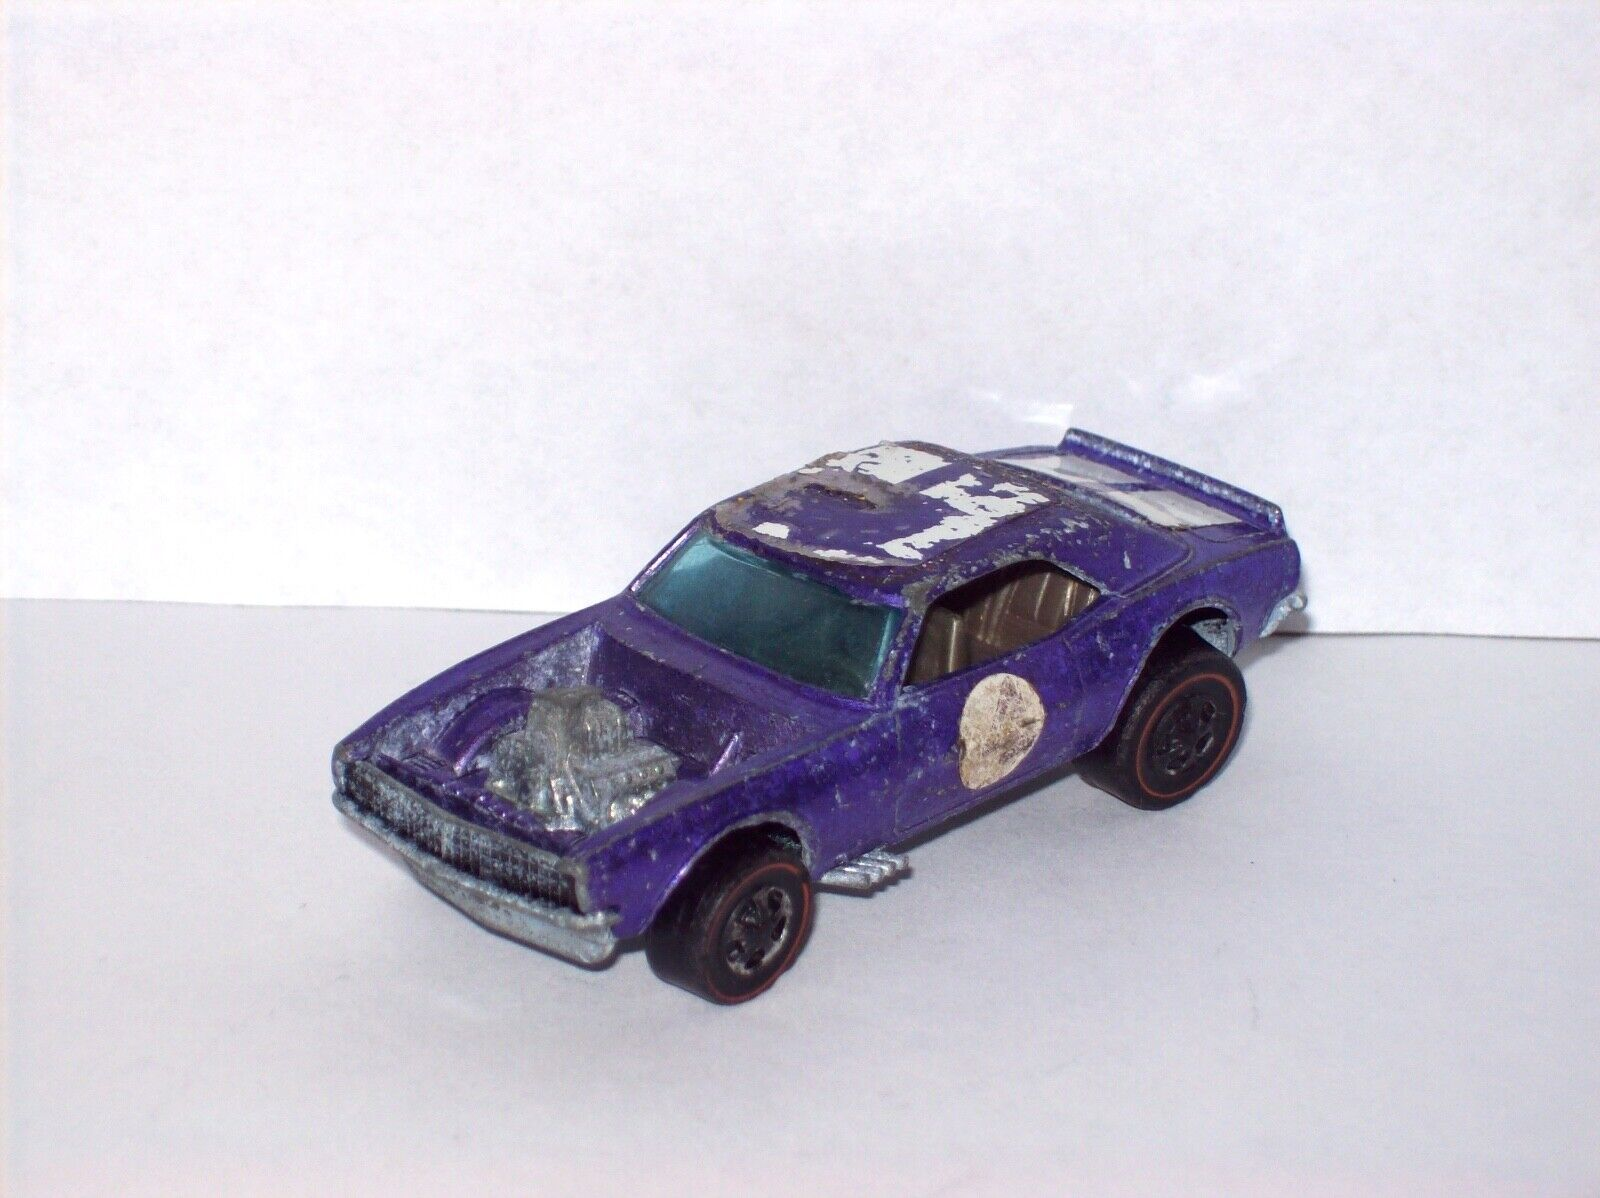 Heavy Chevy 1969 Camaro Purple Redline Hot Wheels Redliner Model Car Muscle Car